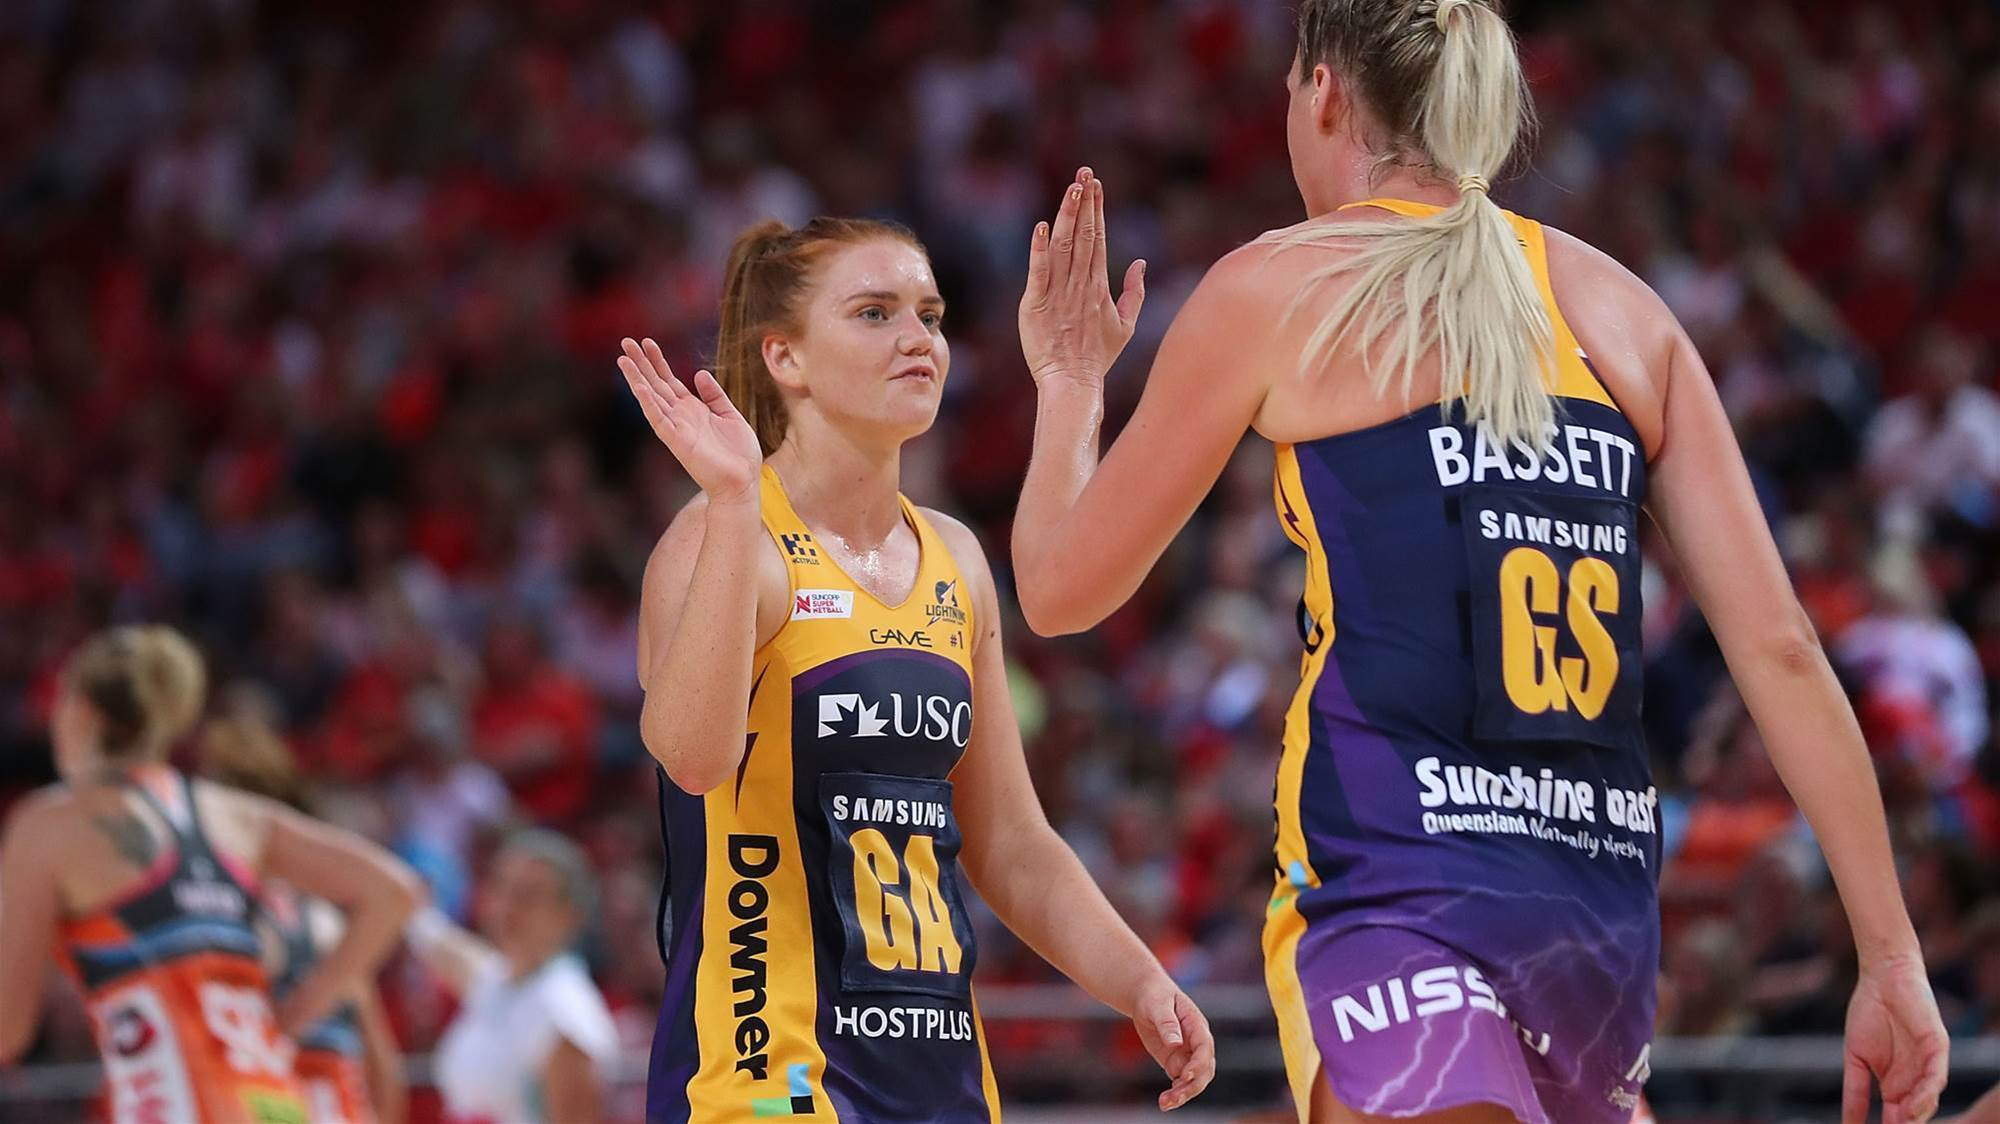 Lightning hoping loss to push them against Firebirds